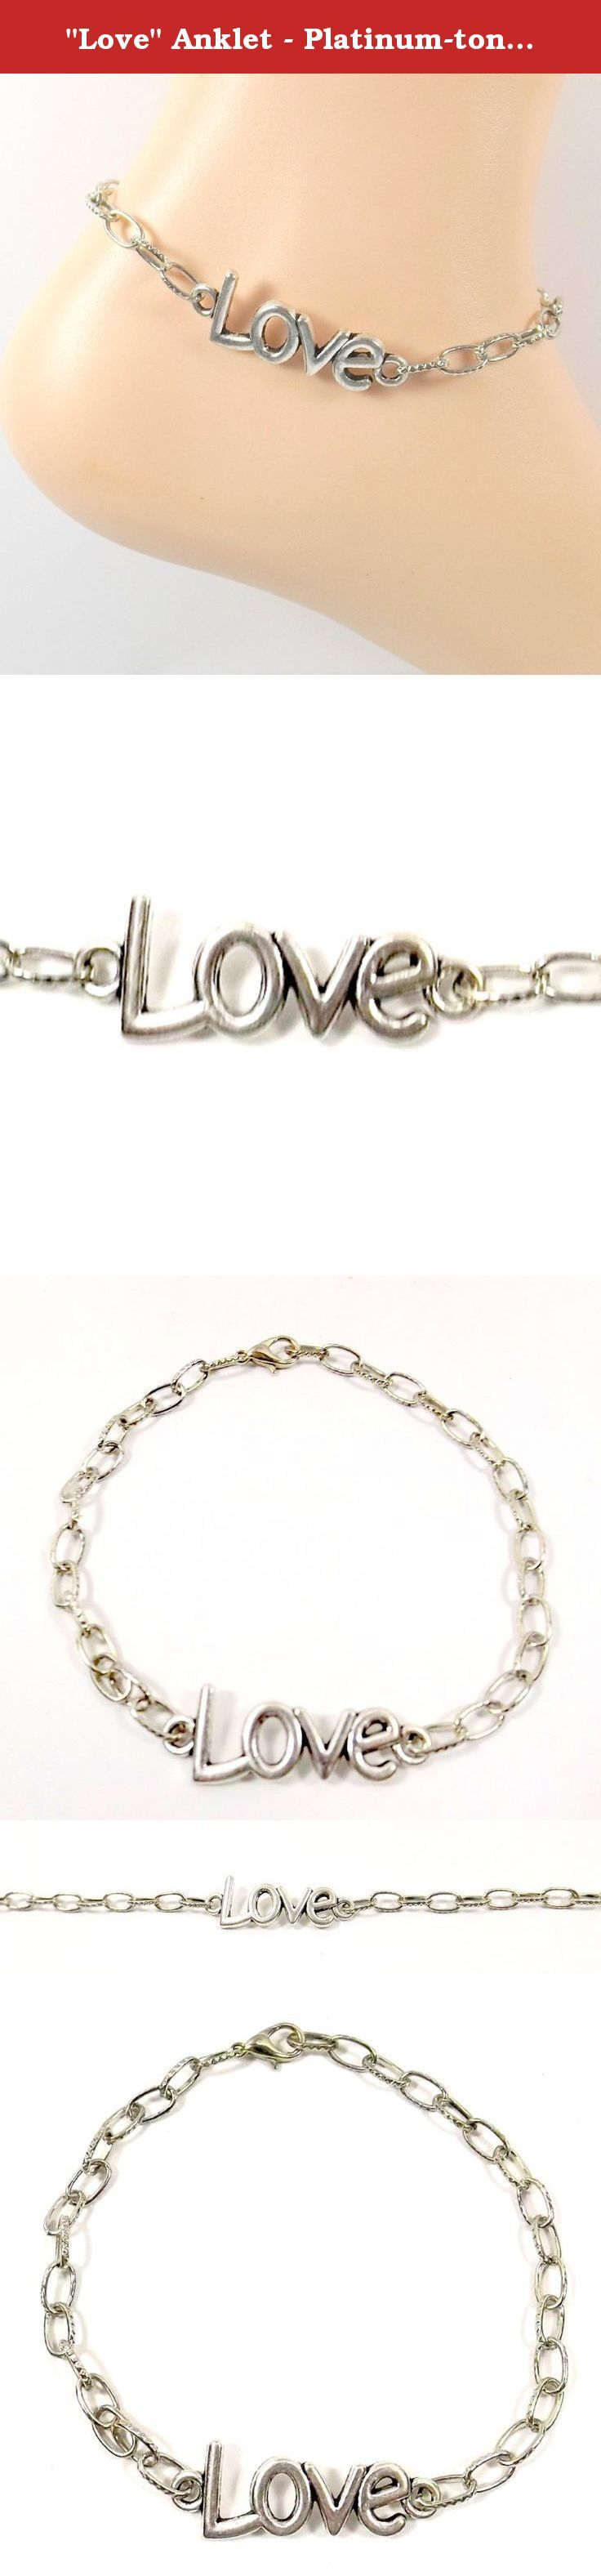 """Love"" Anklet - Platinum-tone Ankle Bracelet- LOVE -. ""LOVE"" a word that is hard to define but lovely to wear and in platinum it is even more beautiful. This particular chain is a light weight but is definitely substantial in look. It closes with a matching lobster-claw clasp. It is dainty, feminine and sexy all at the same time. It is available in sizes 8-10, please complete customization to determine your correct size. To determine proper size measure ankle just below ankle bone and add..."